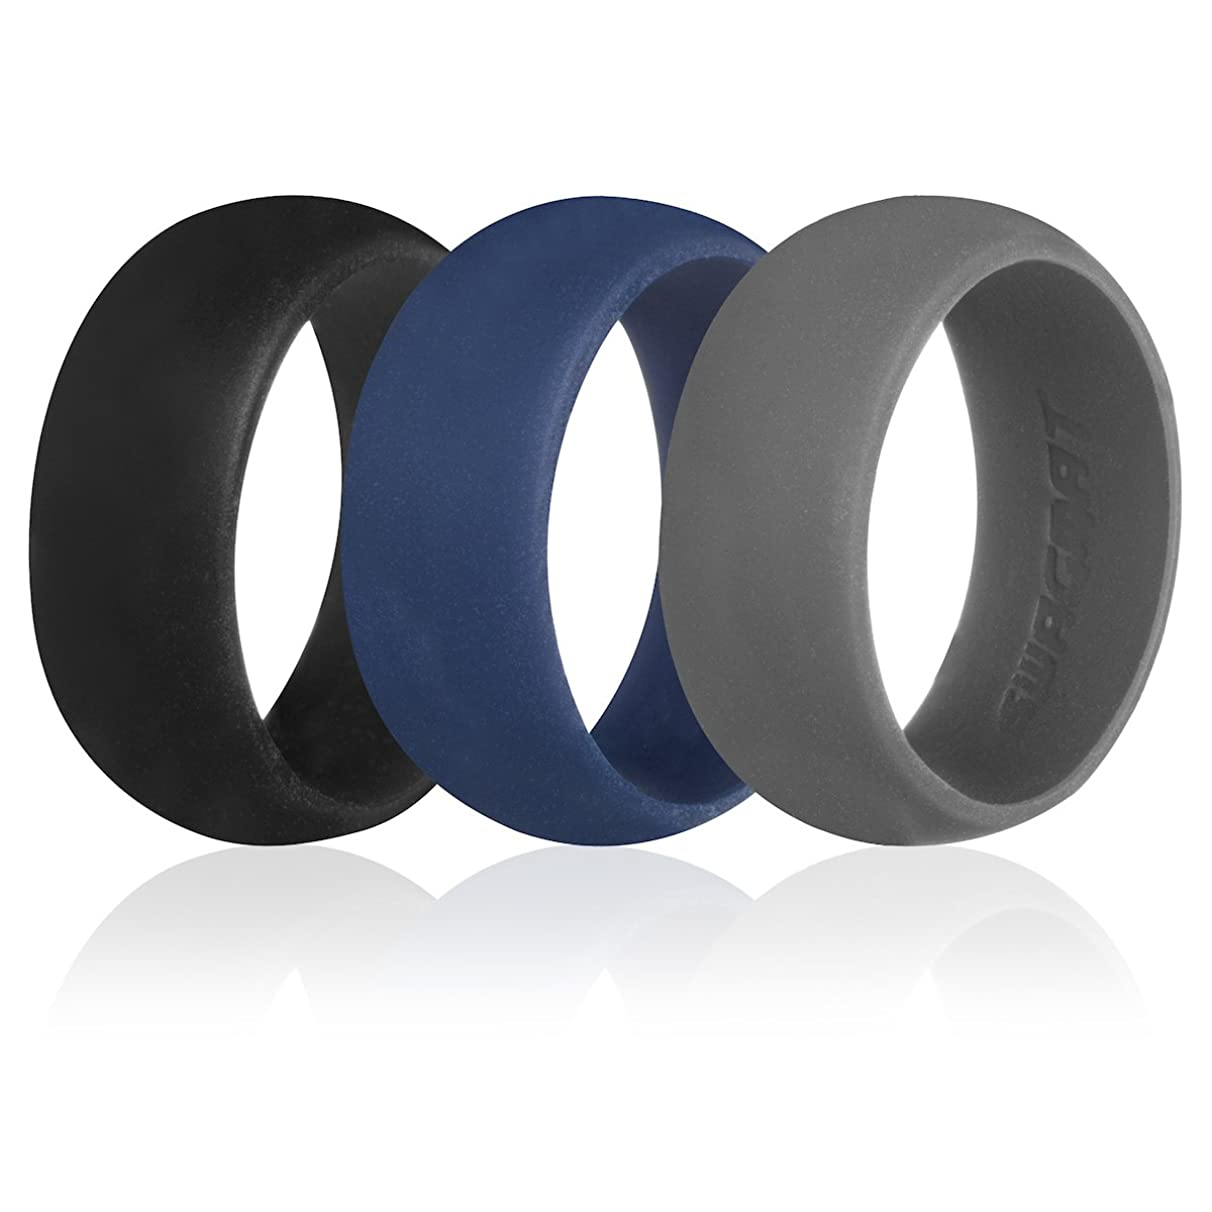 Men's Silicone Wedding Ring Bands – 3 Ring Pack – Mine Shaft Black, Emperor Gray, Silver Sand, Cloudburst Blue - 8.7 mm Width - 2 mm Thickness